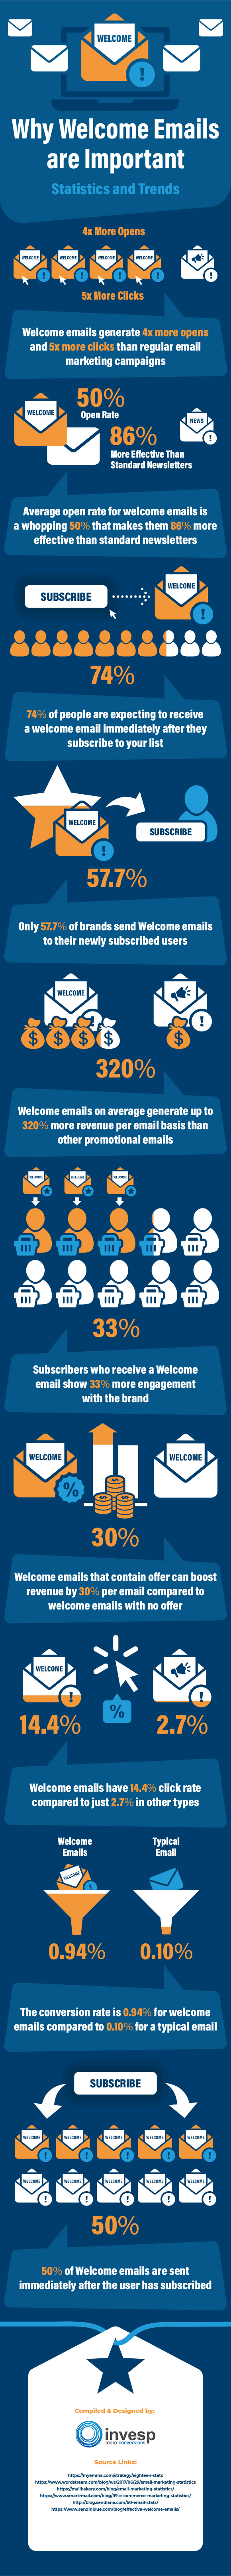 Why Welcome Emails are Important – Statistics and Trends